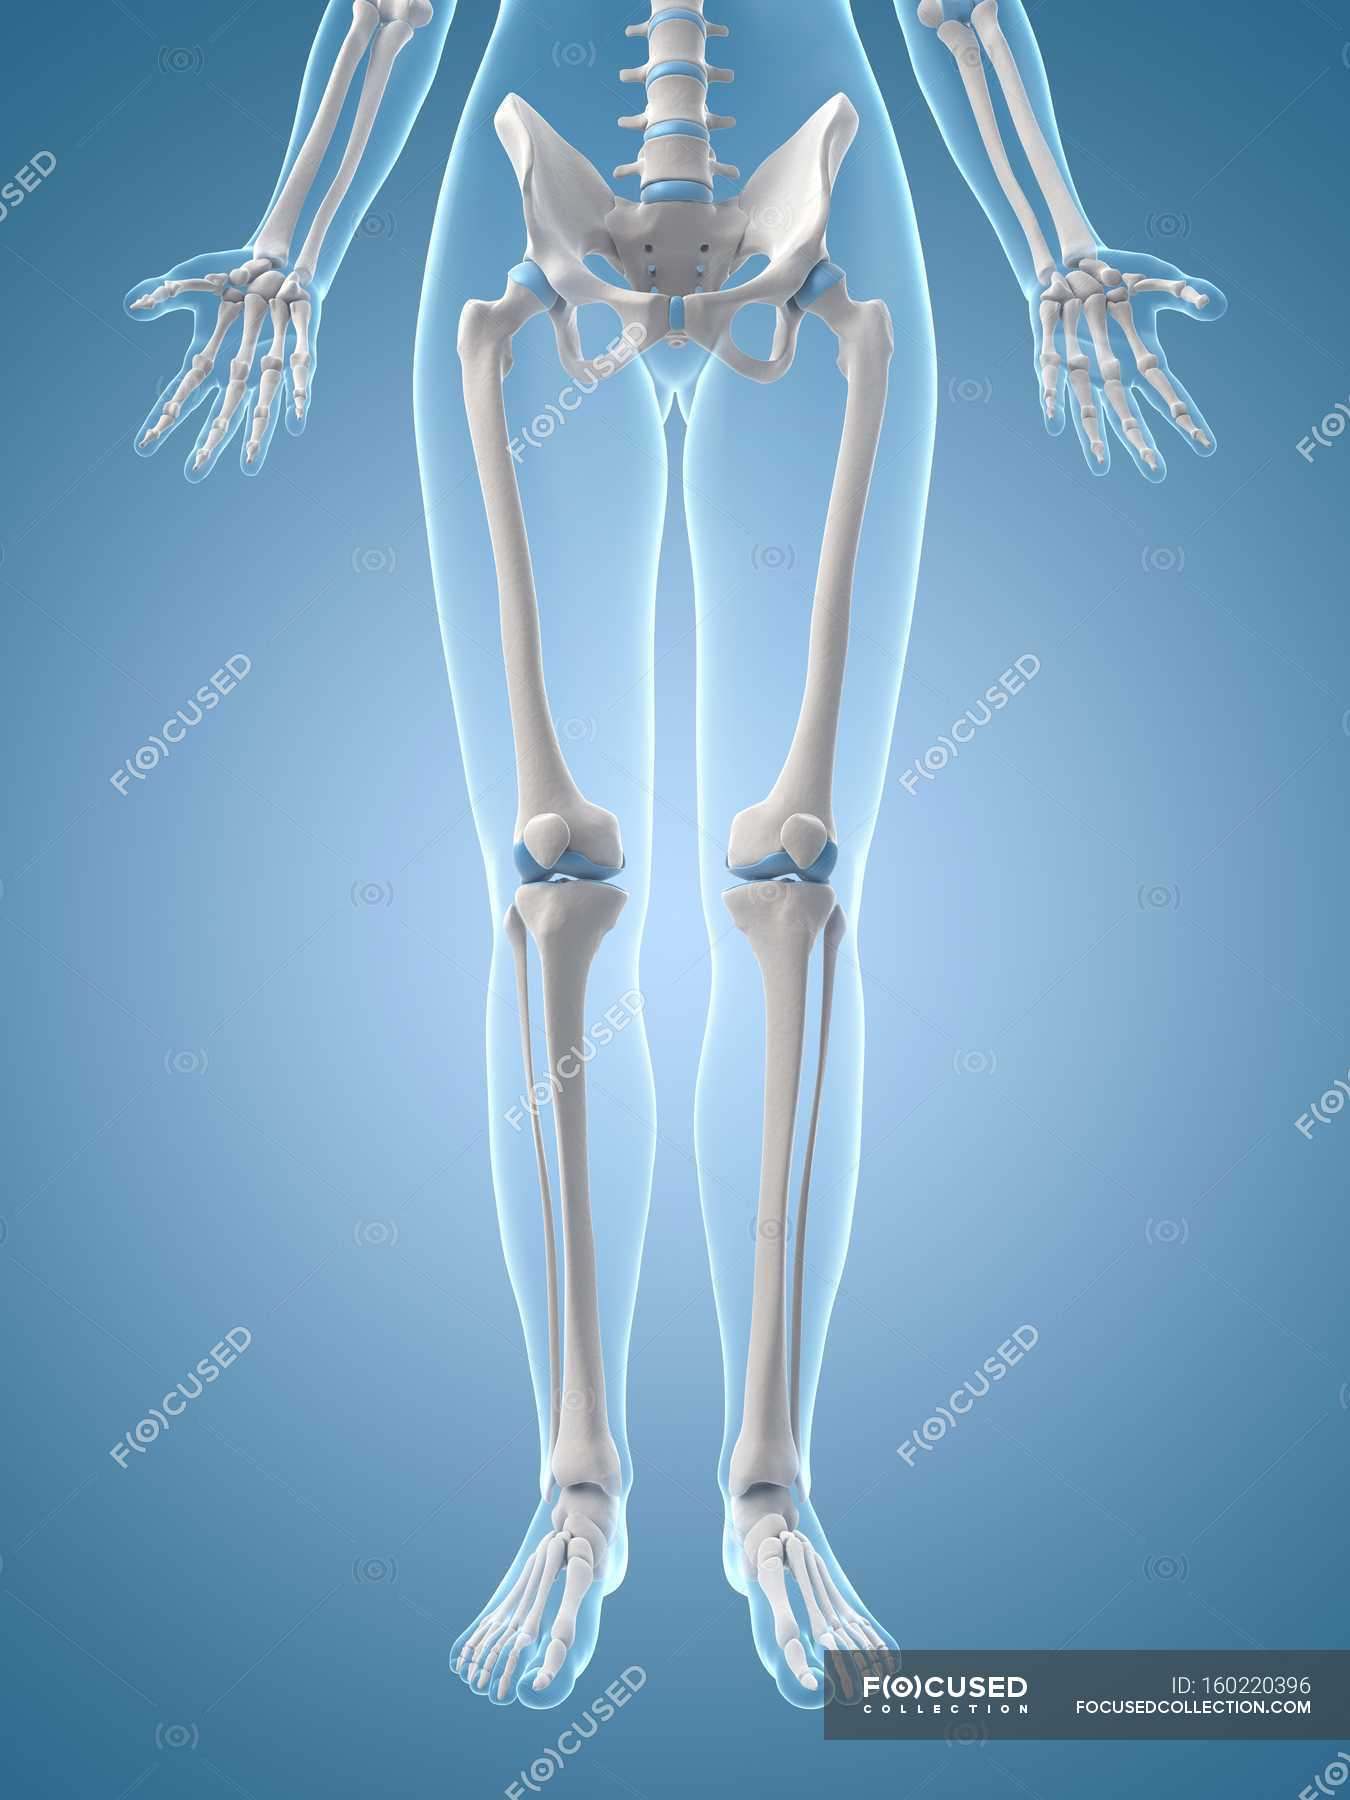 Human Leg Bones And Joints Stock Photo 160220396